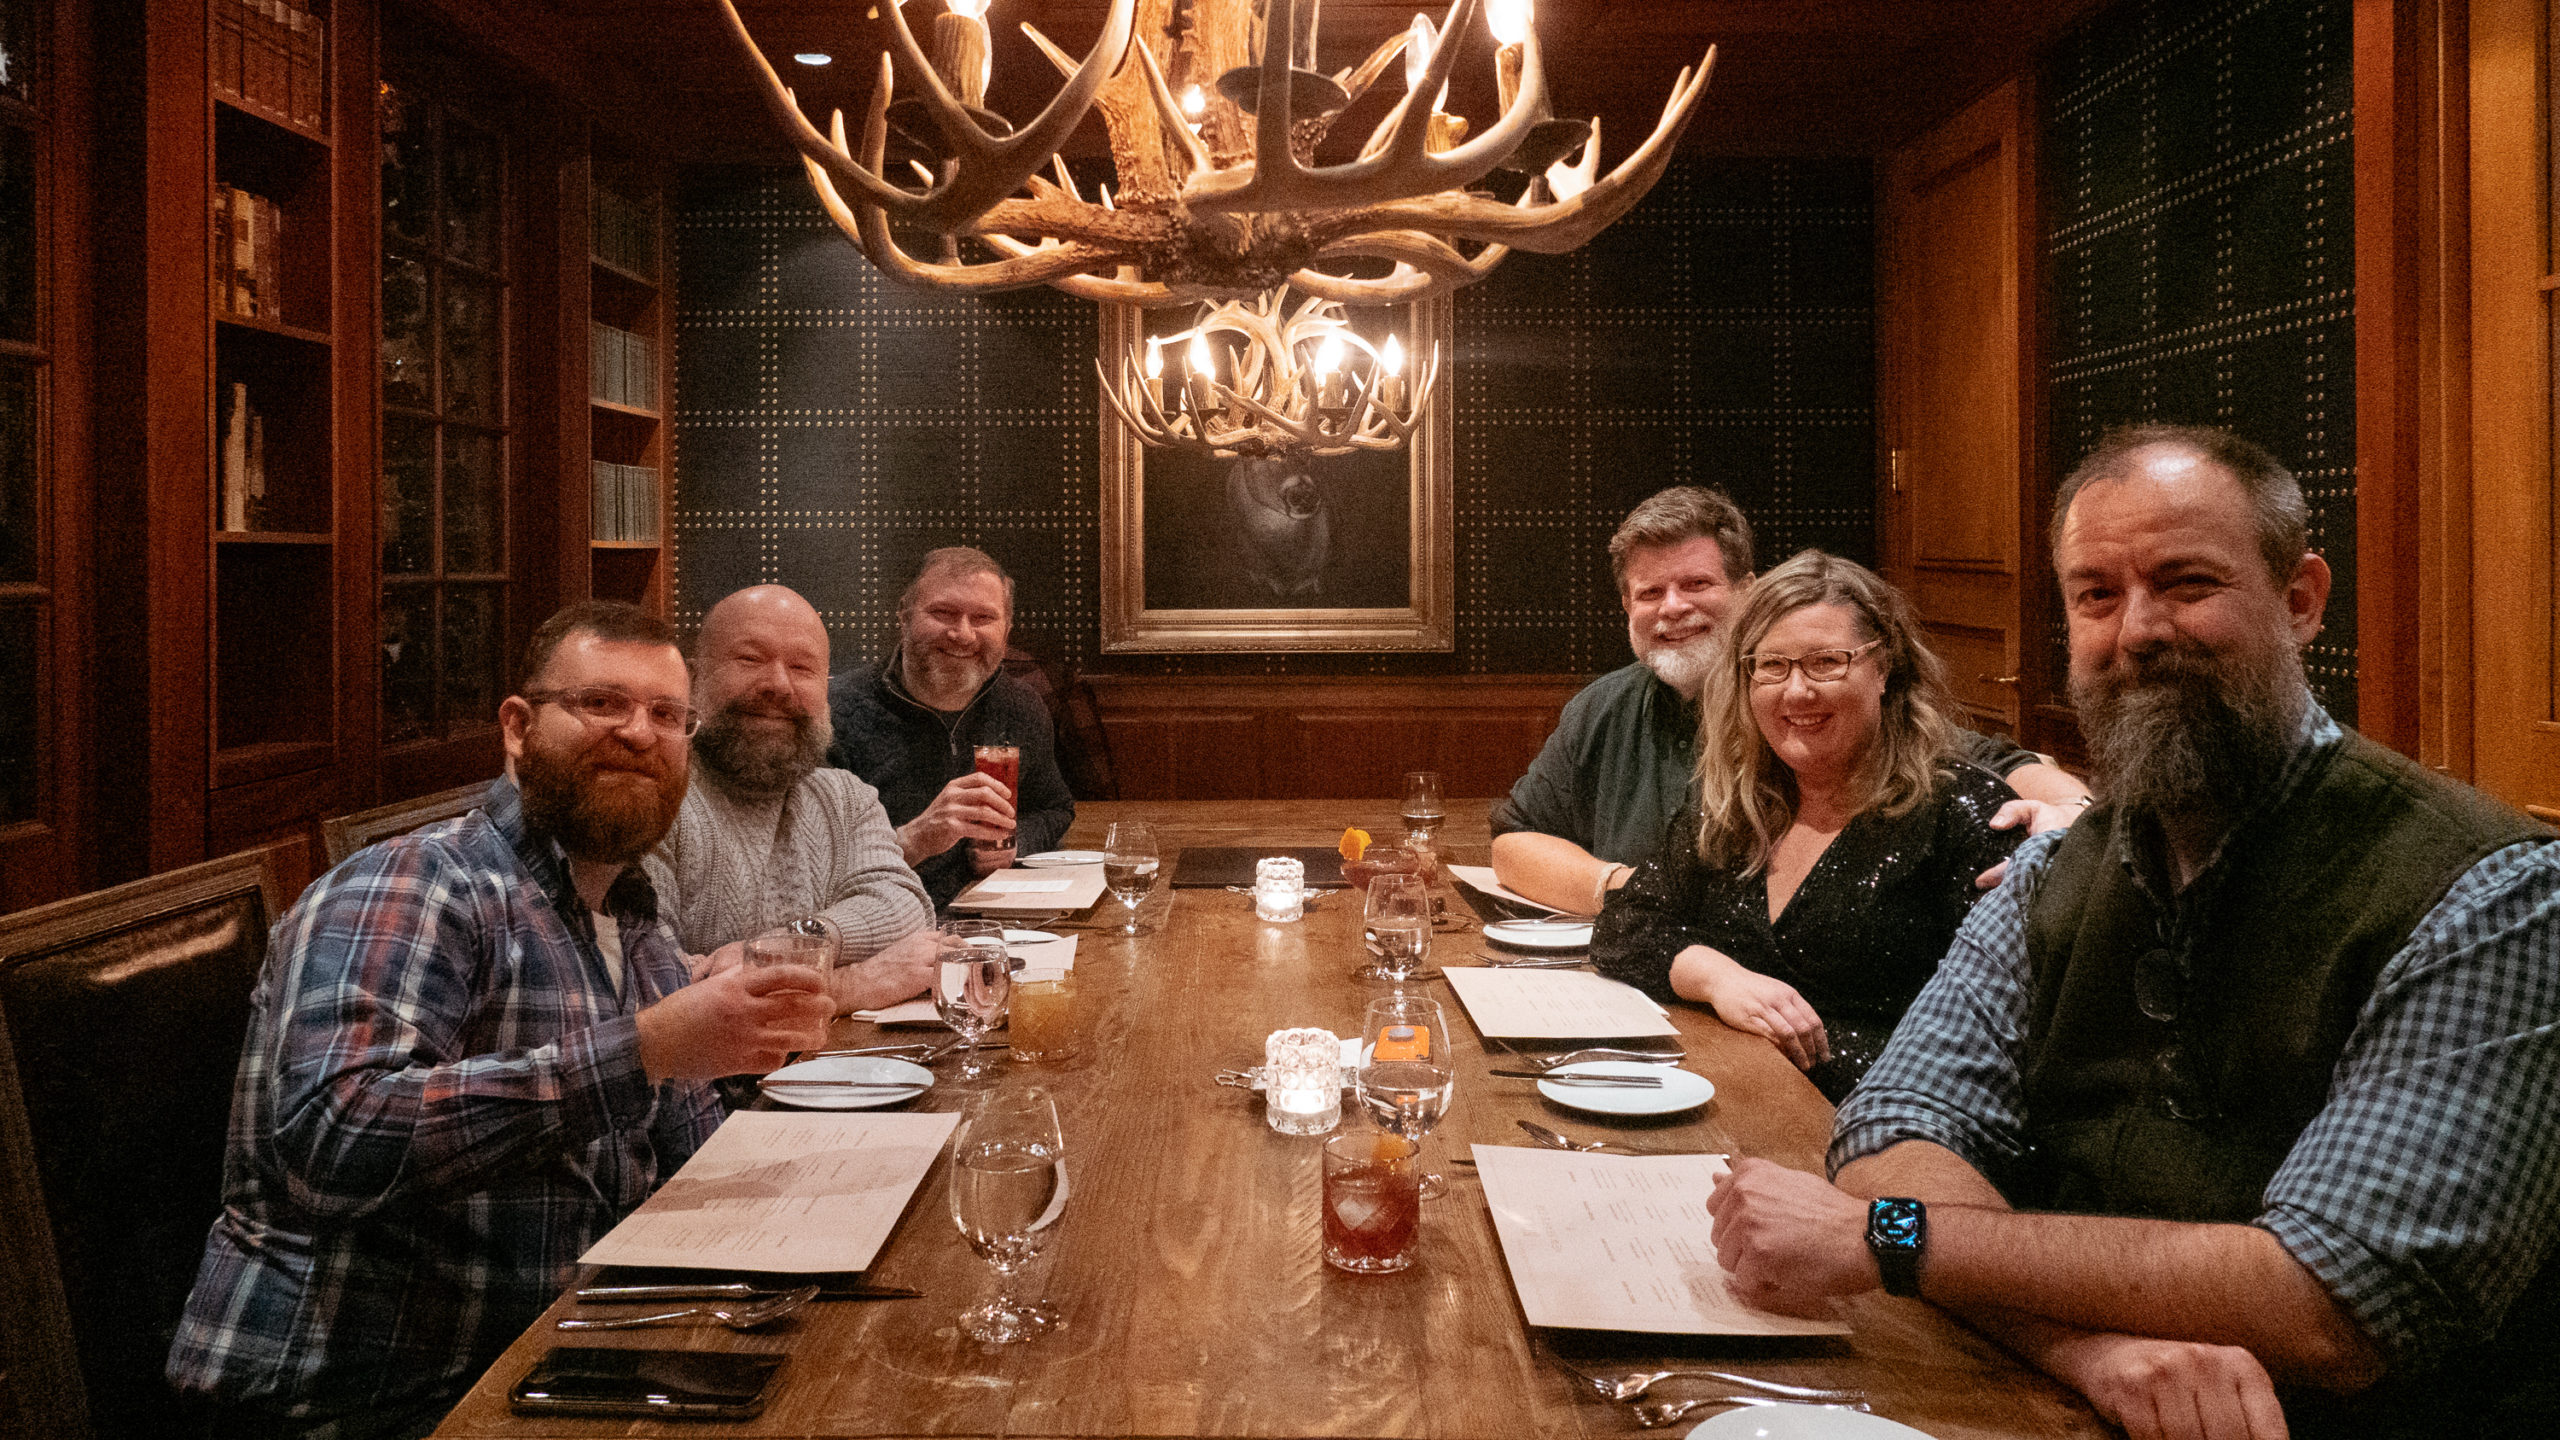 A group of bearded men and a woman at a restaurant table